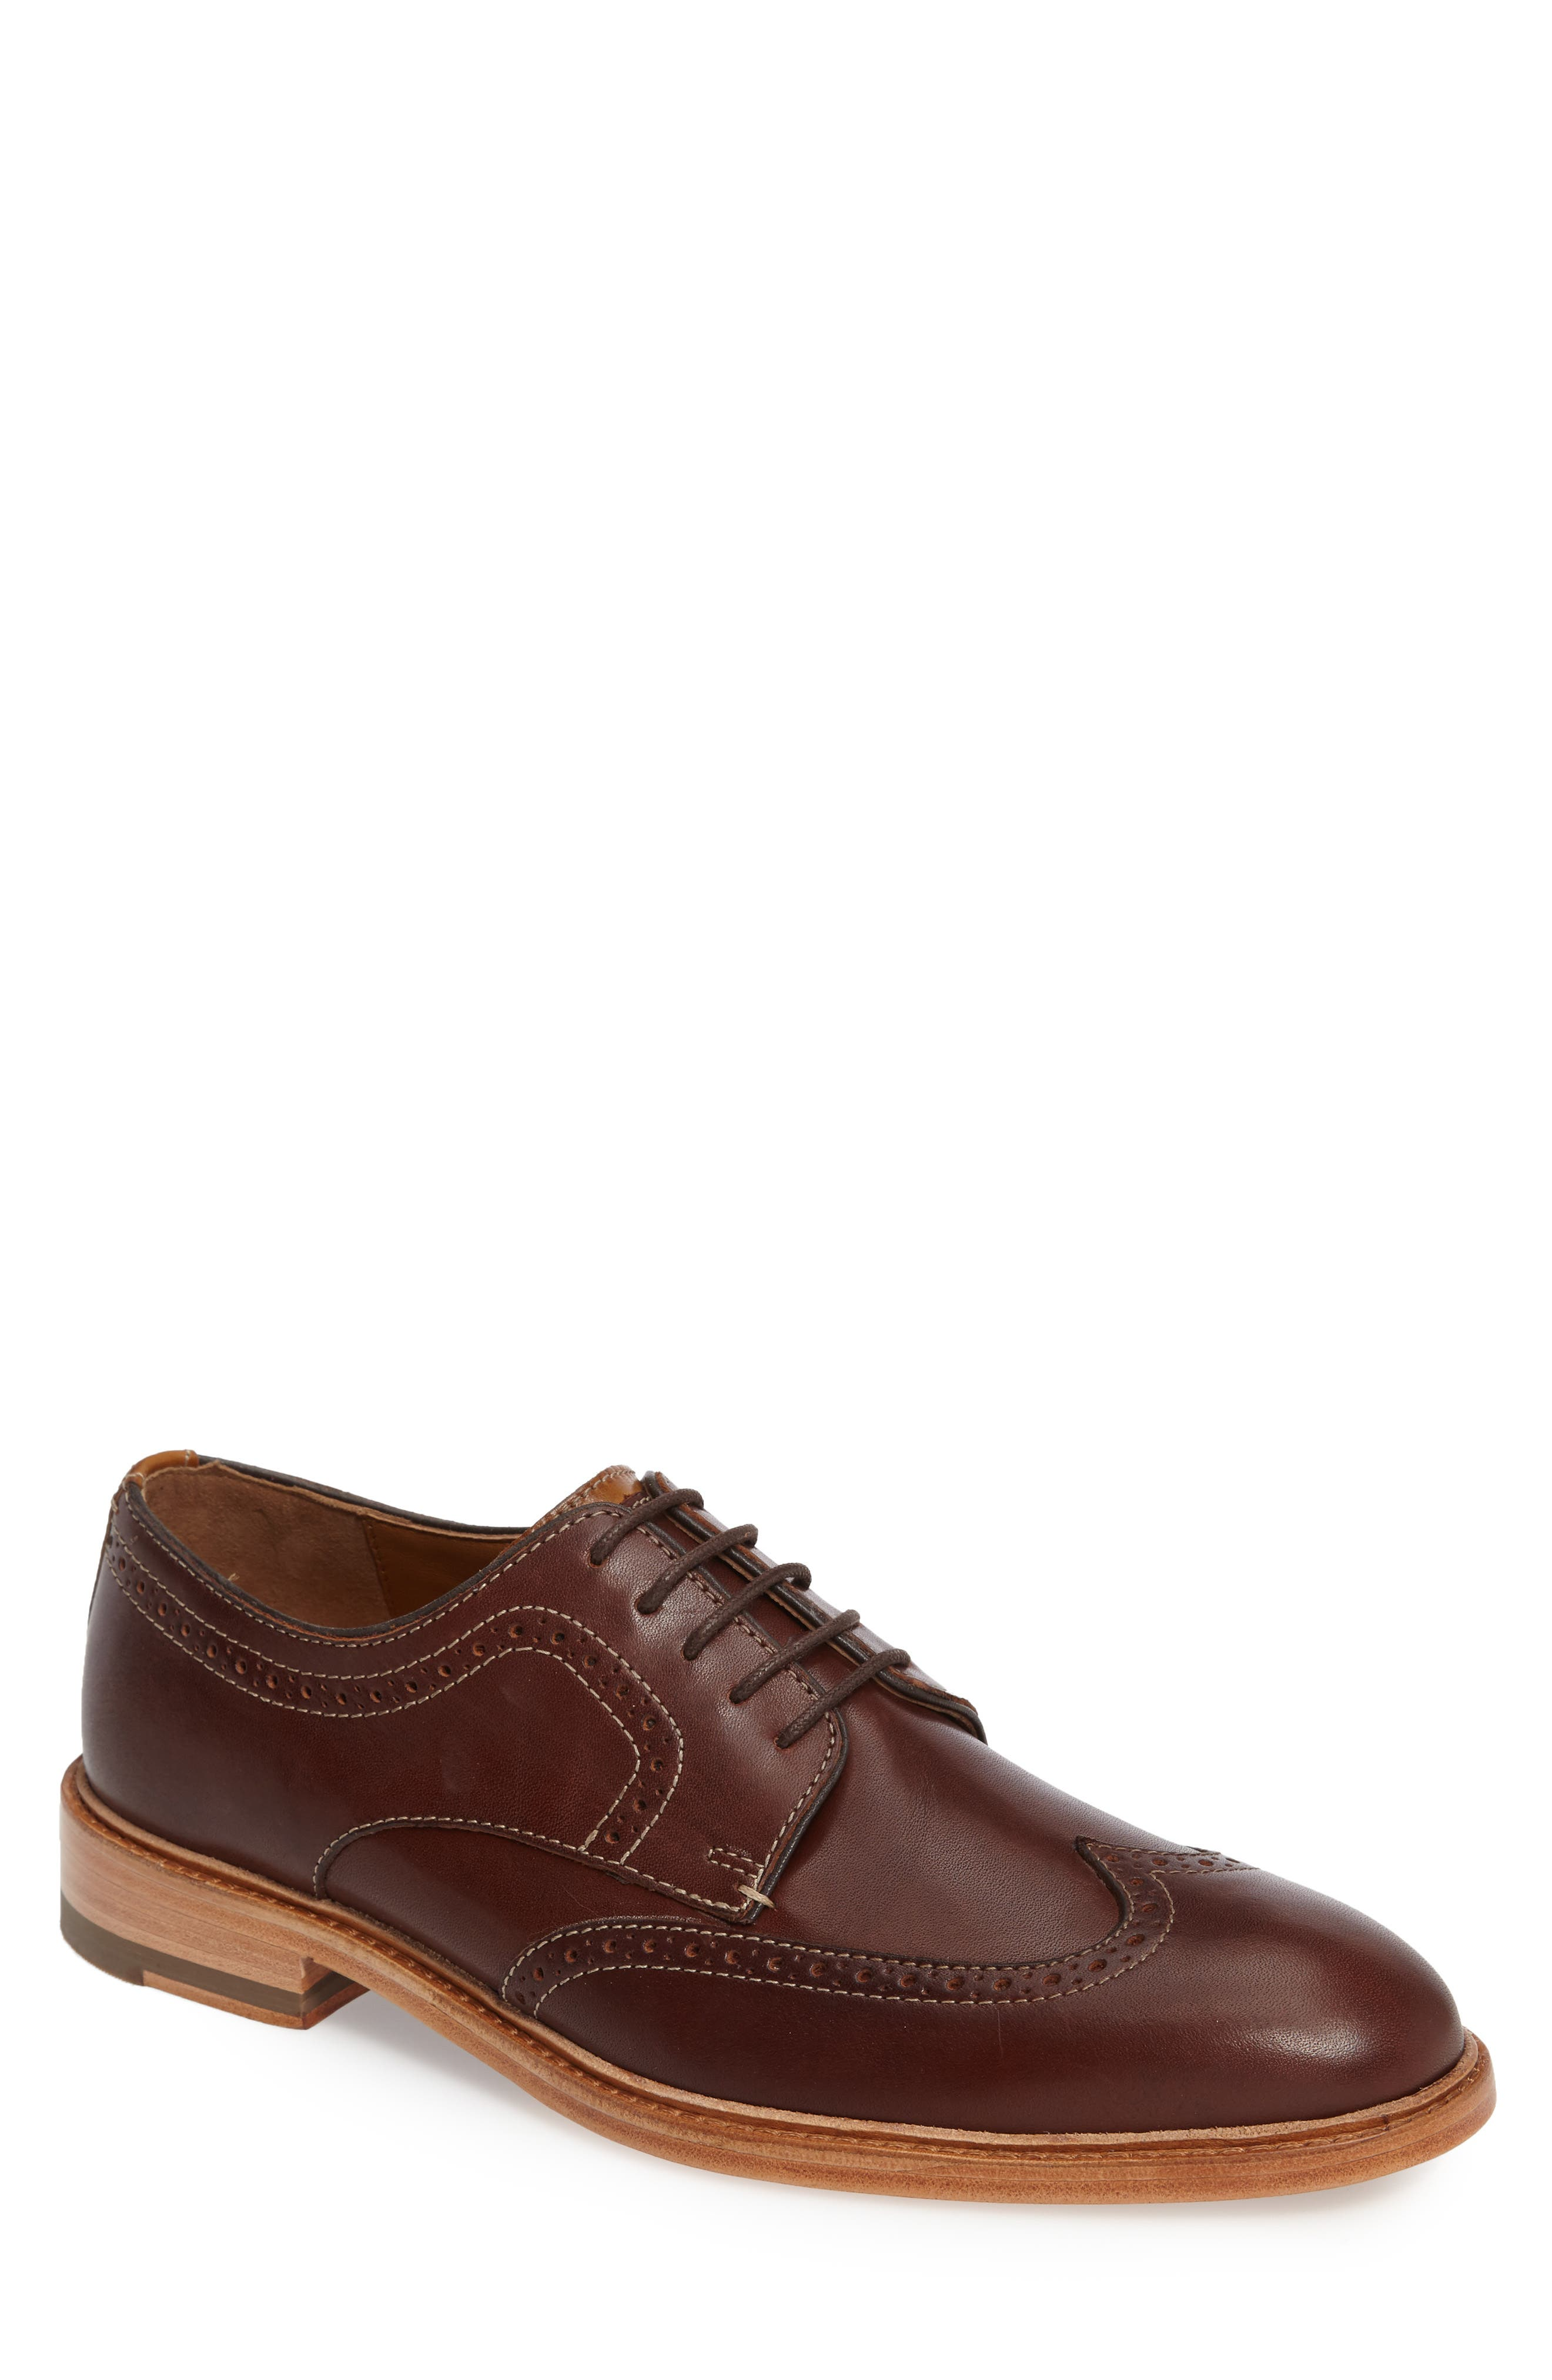 Campbell Wingtip,                         Main,                         color, 206